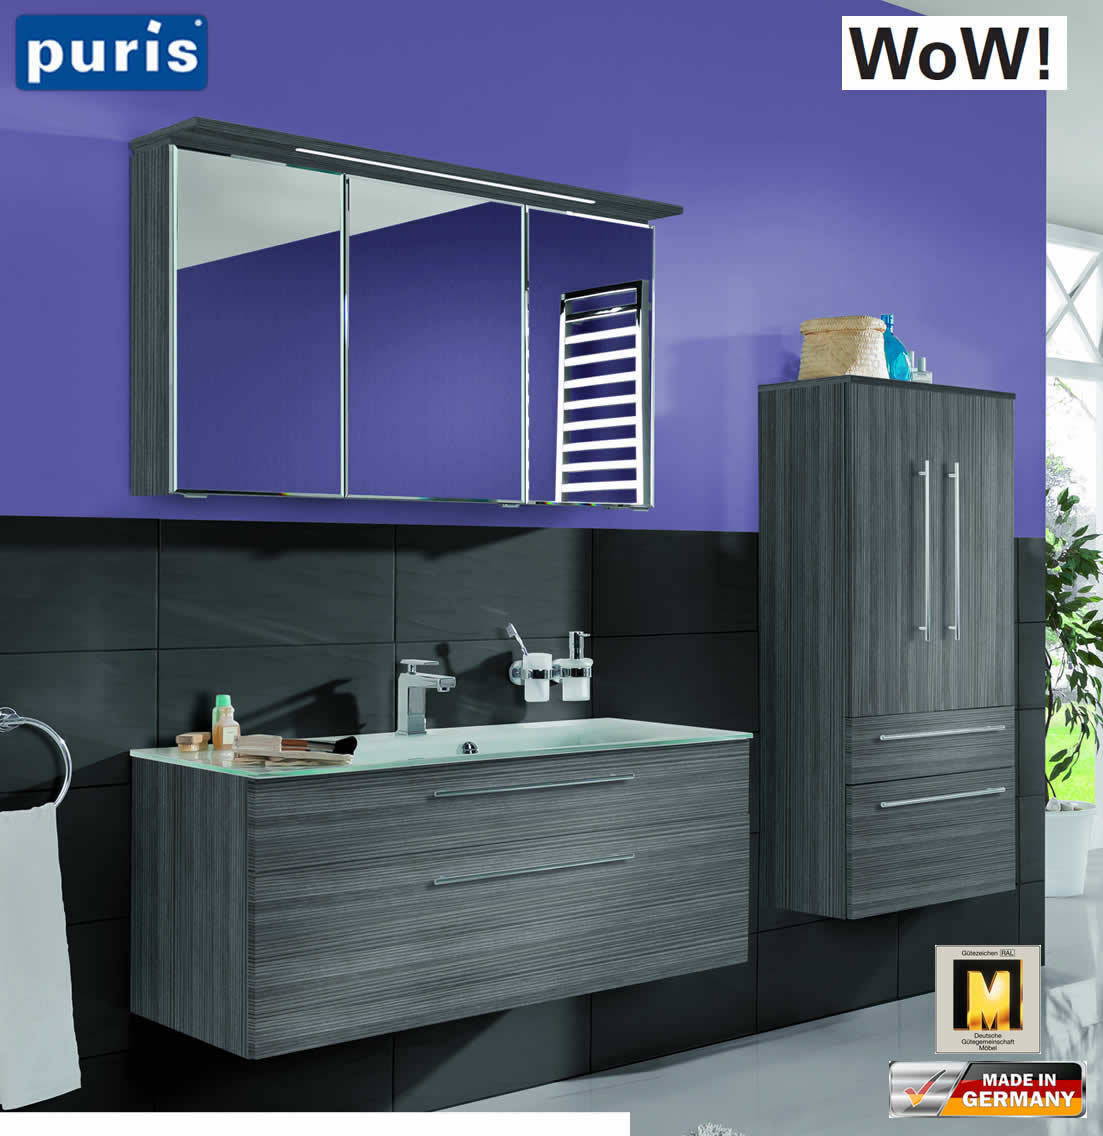 puris wow badm bel set 110 cm in hacienda grau 3tlg. Black Bedroom Furniture Sets. Home Design Ideas